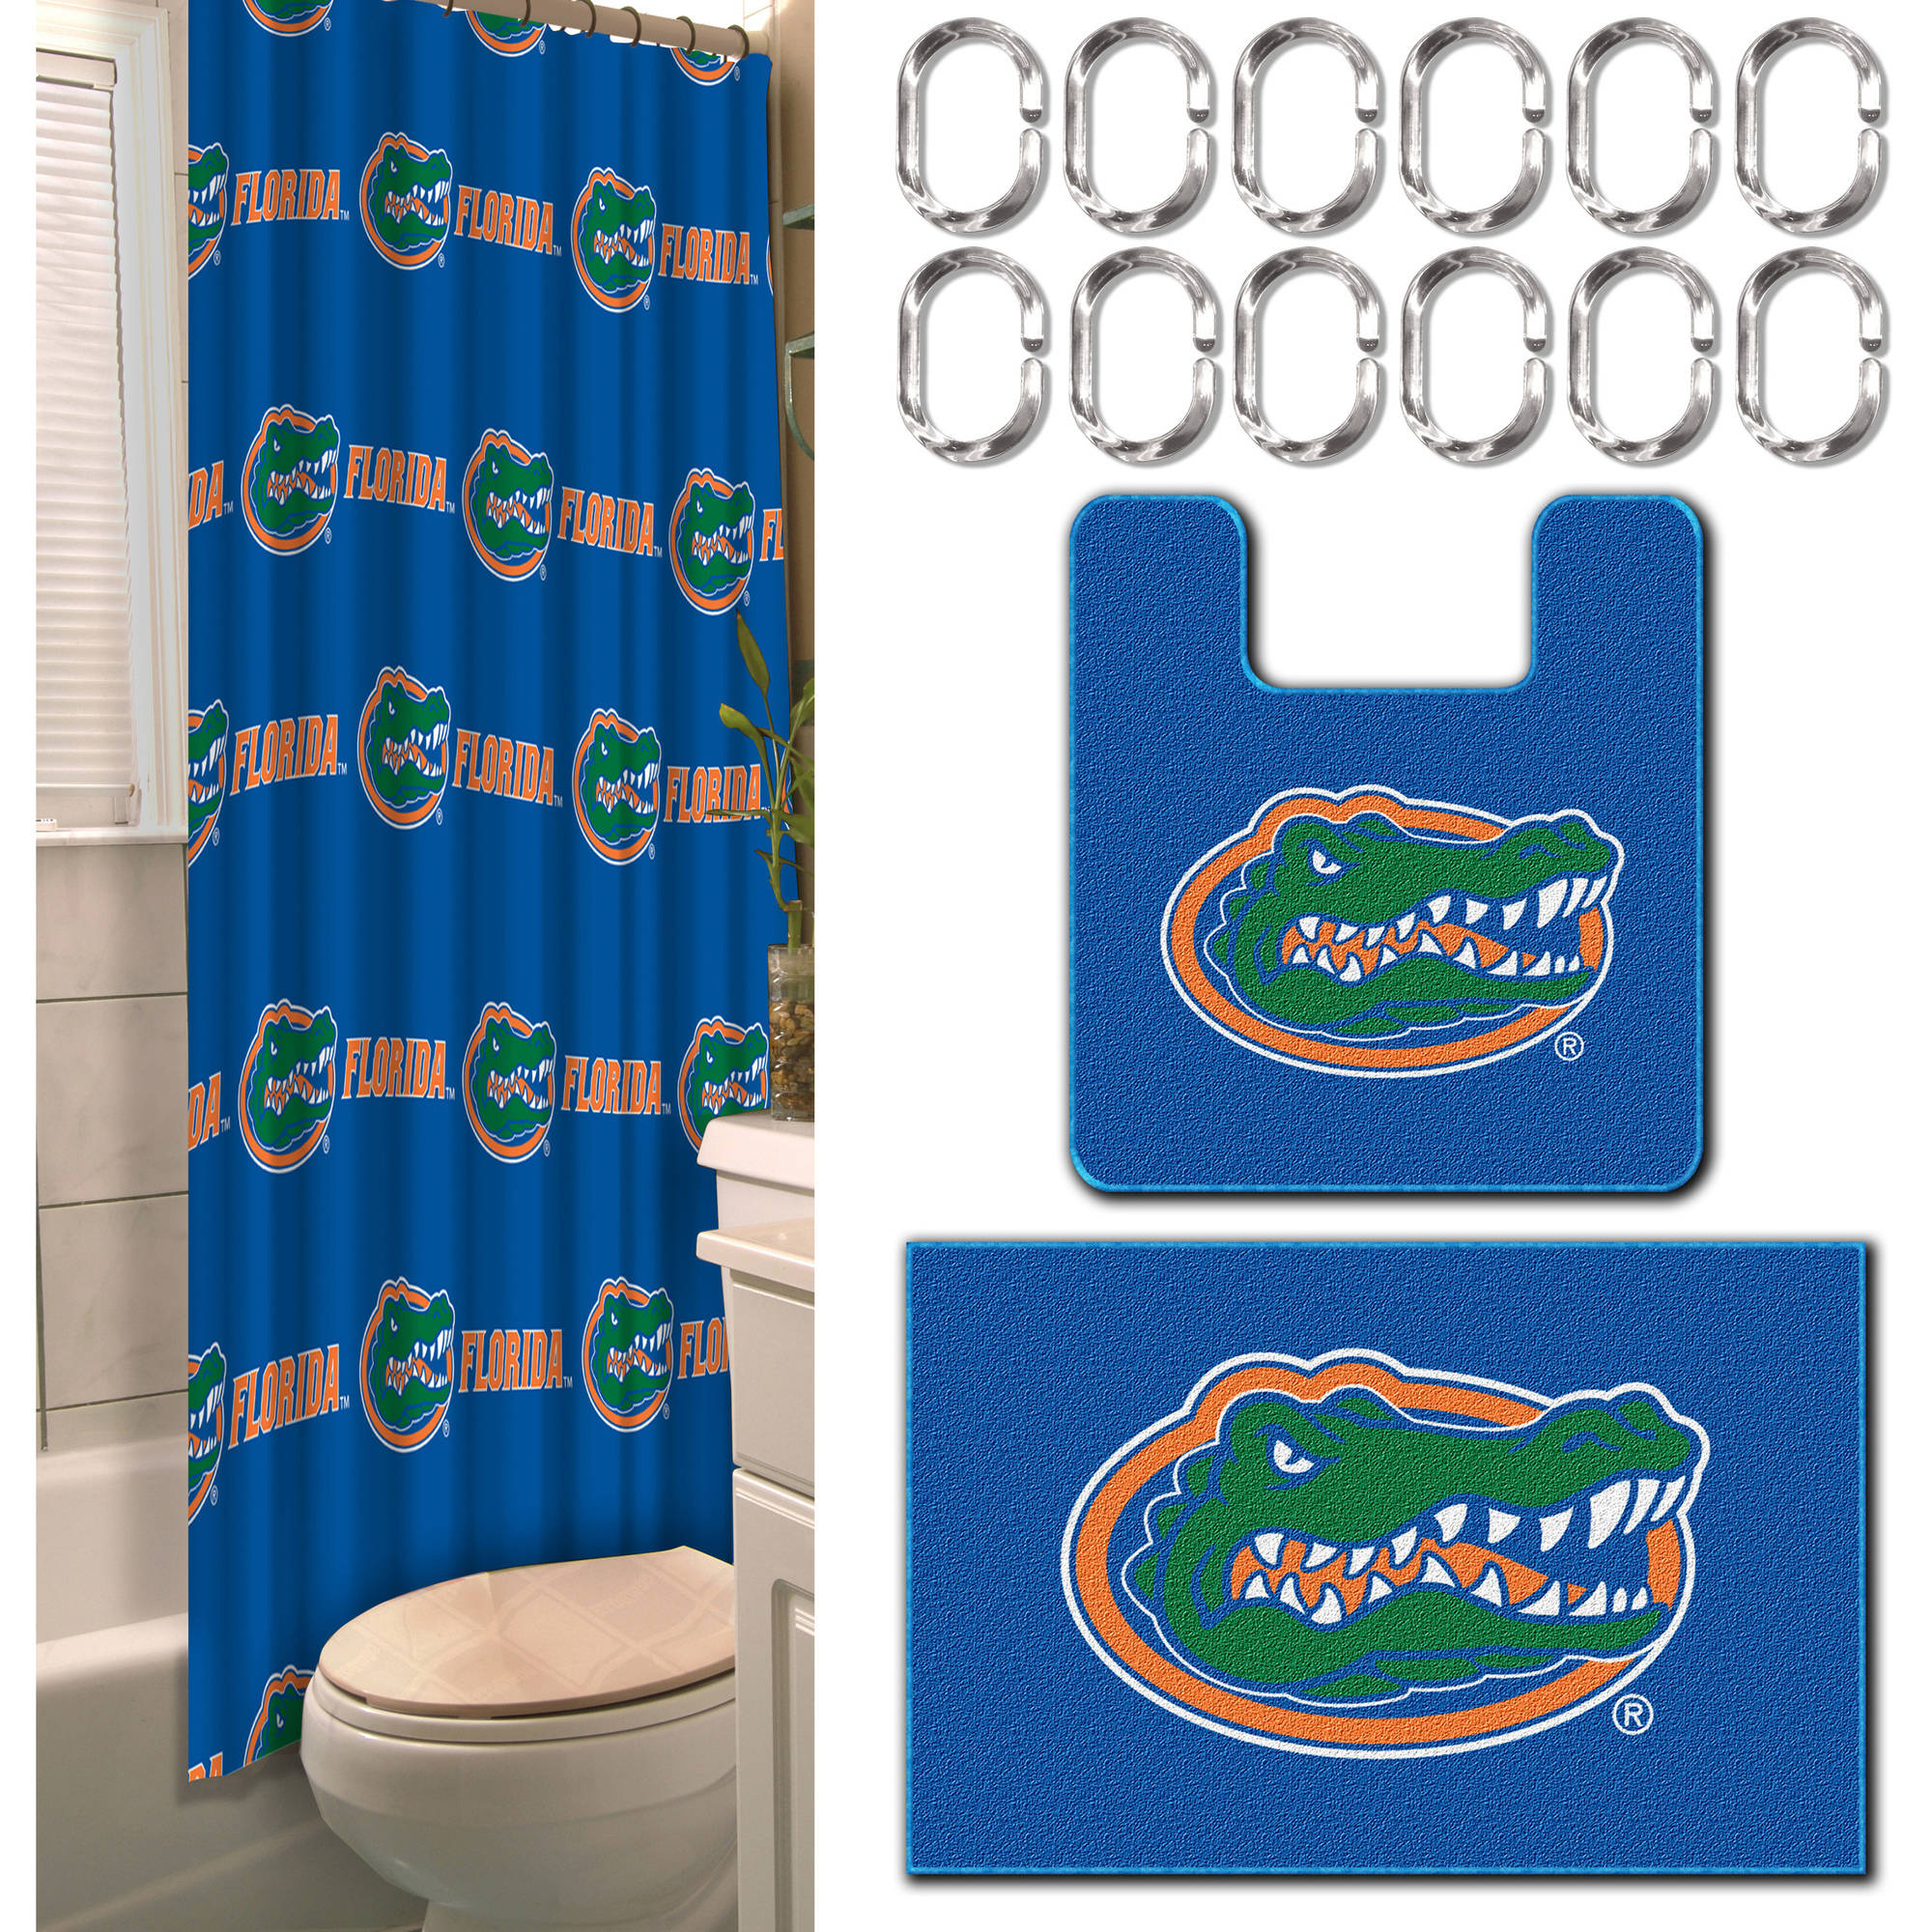 NCAA Florida Gators 15-Piece Bath Set